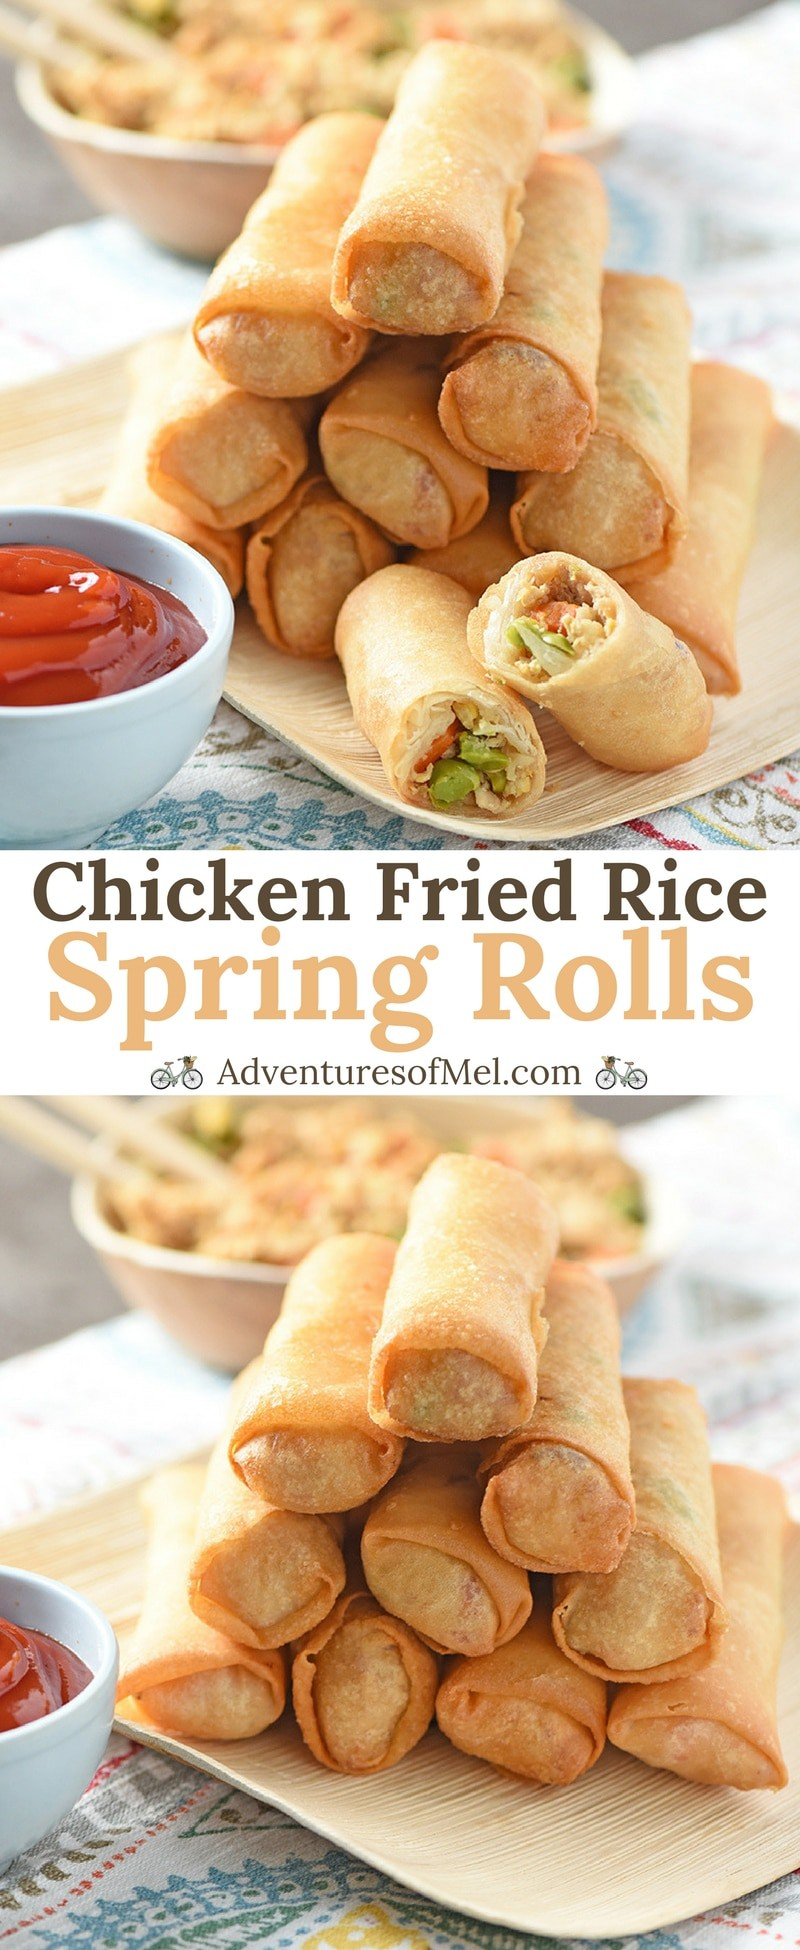 How to make Chicken Fried Rice Spring Rolls